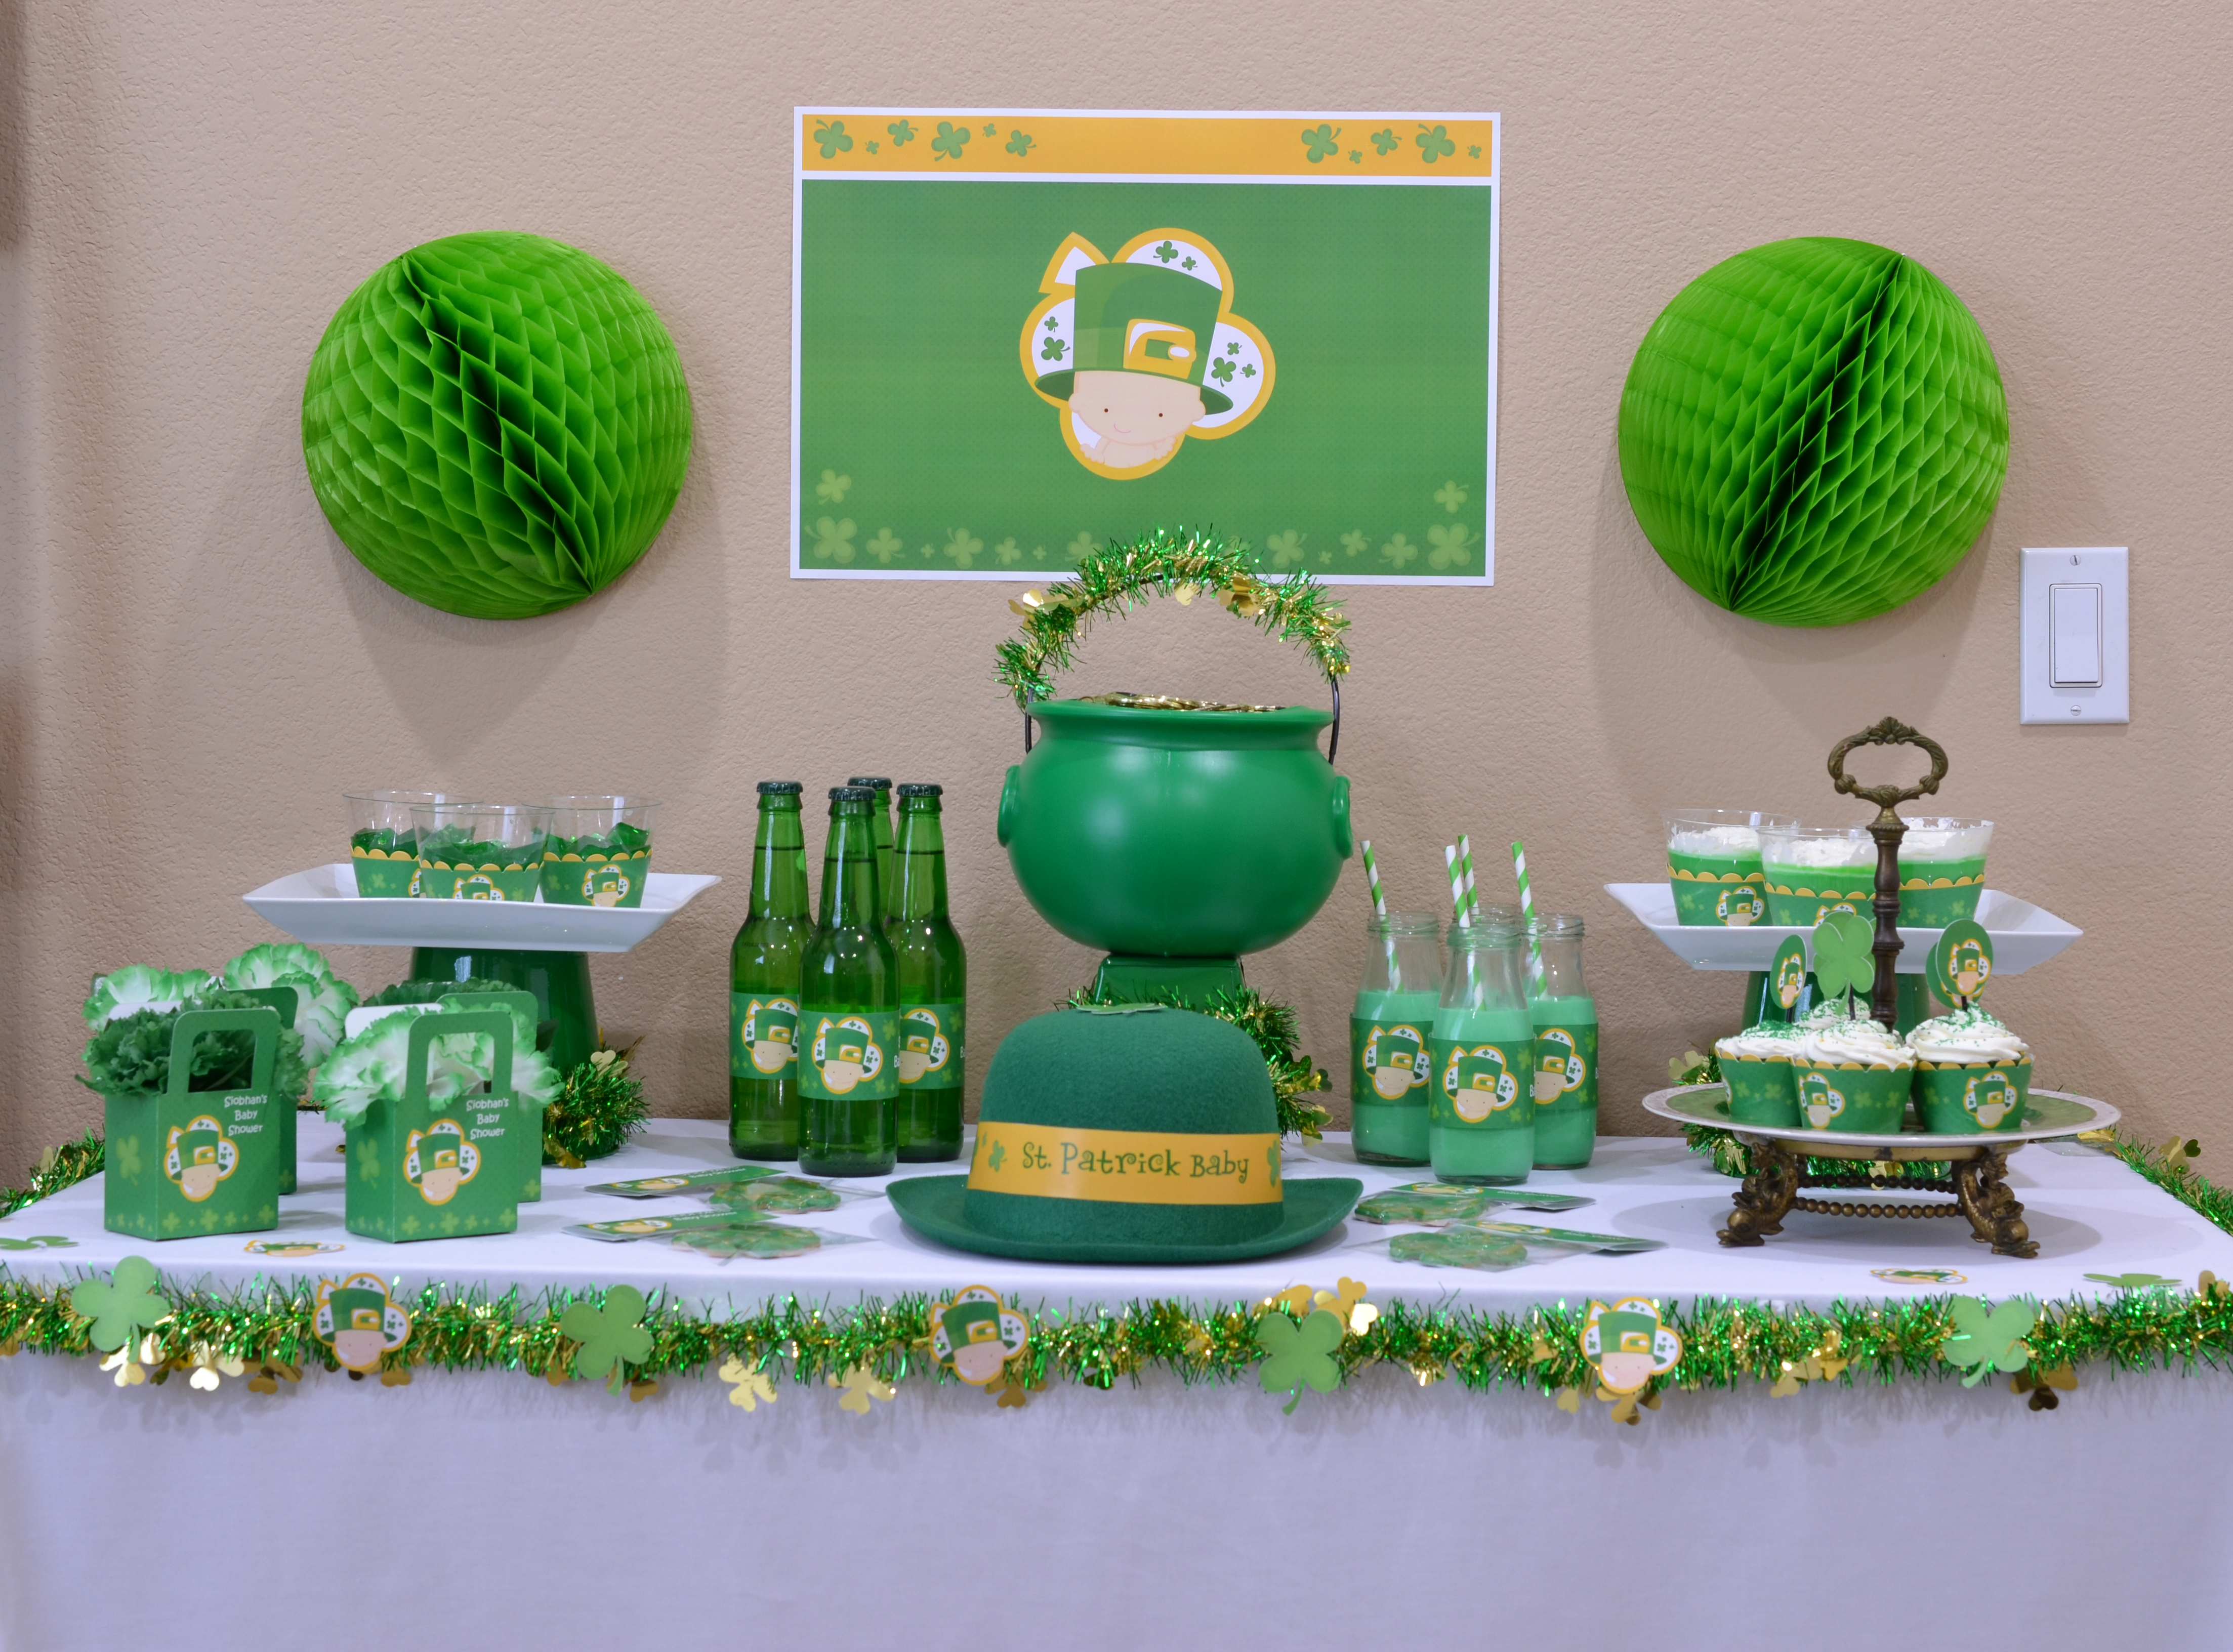 Advise St patricks day adult party idea you